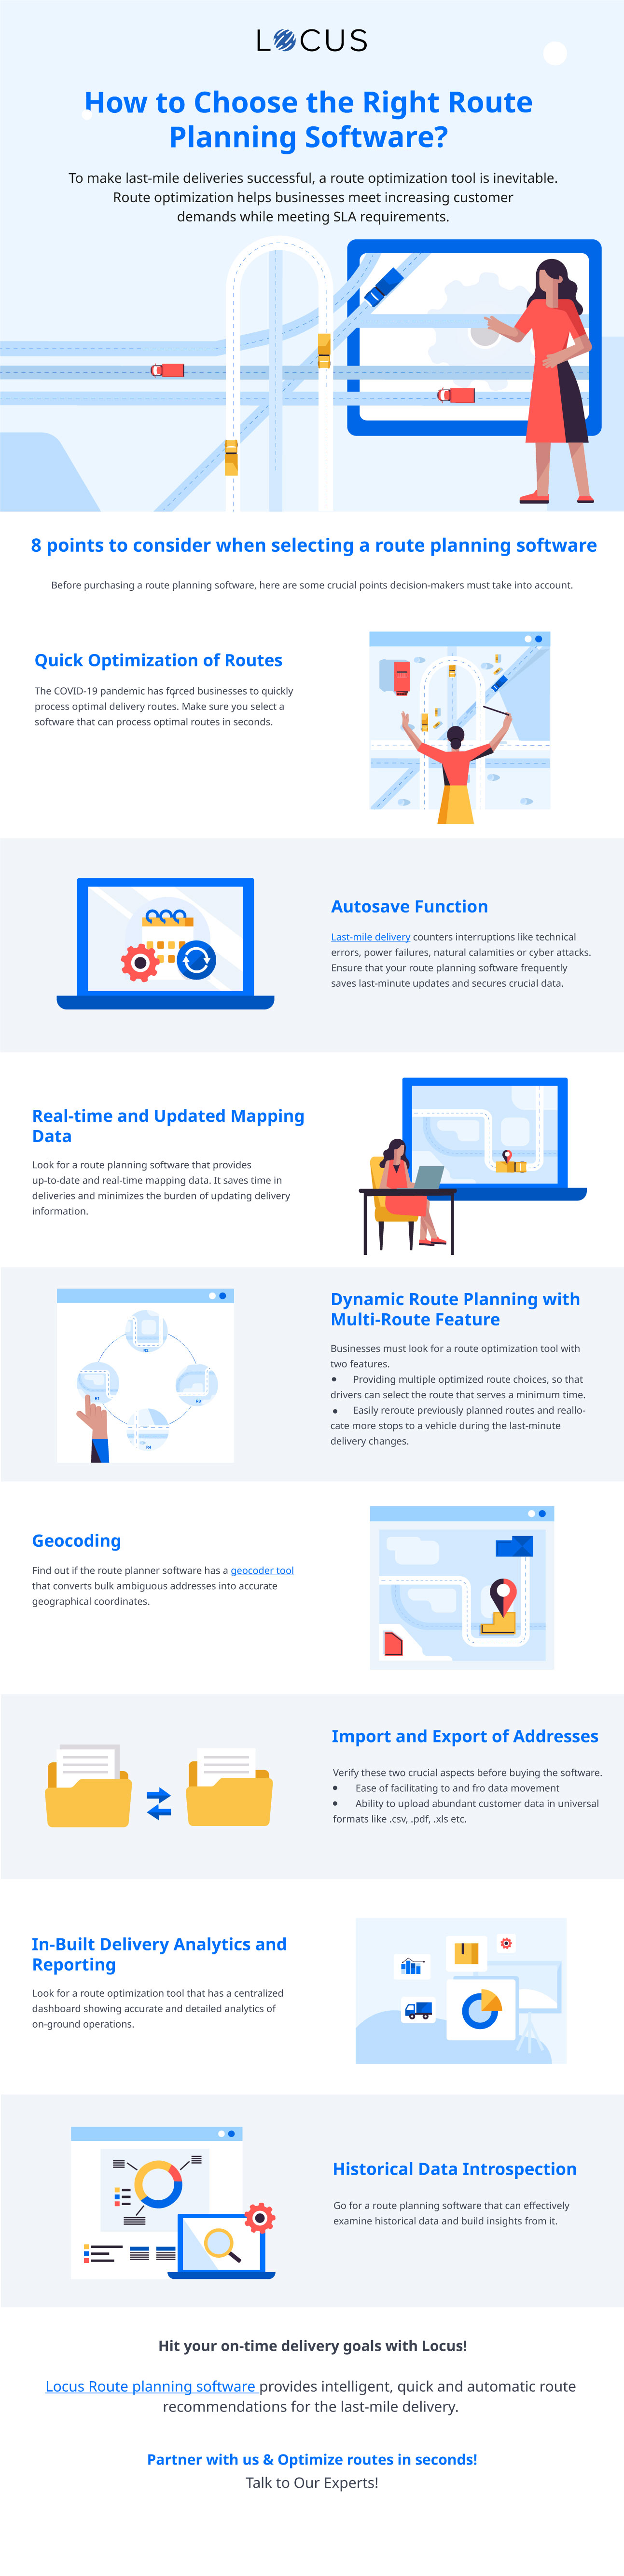 [Infographic] How to Choose the Right Route Planning Software?